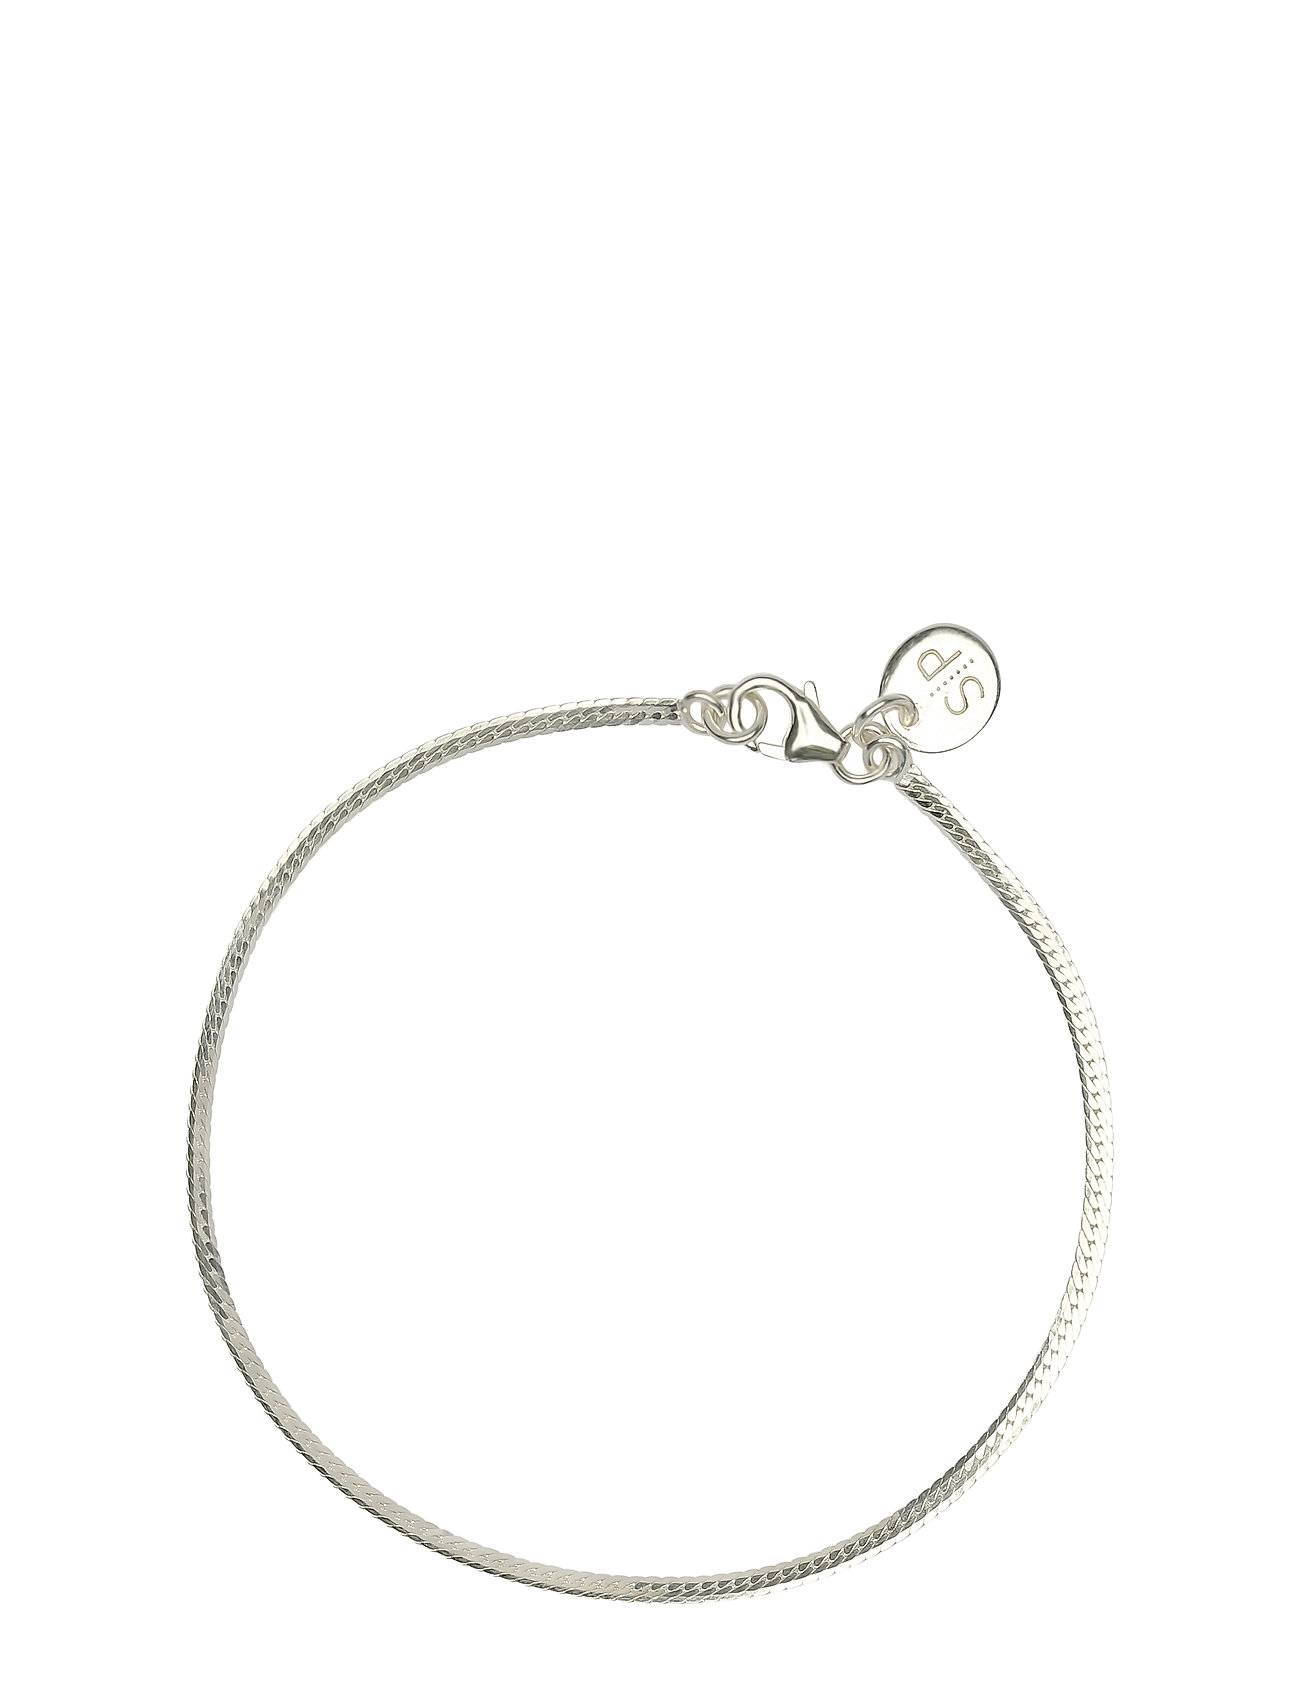 Syster P Herringb Bracelet Silver Accessories Jewellery Bracelets Chain Bracelets Hopea Syster P